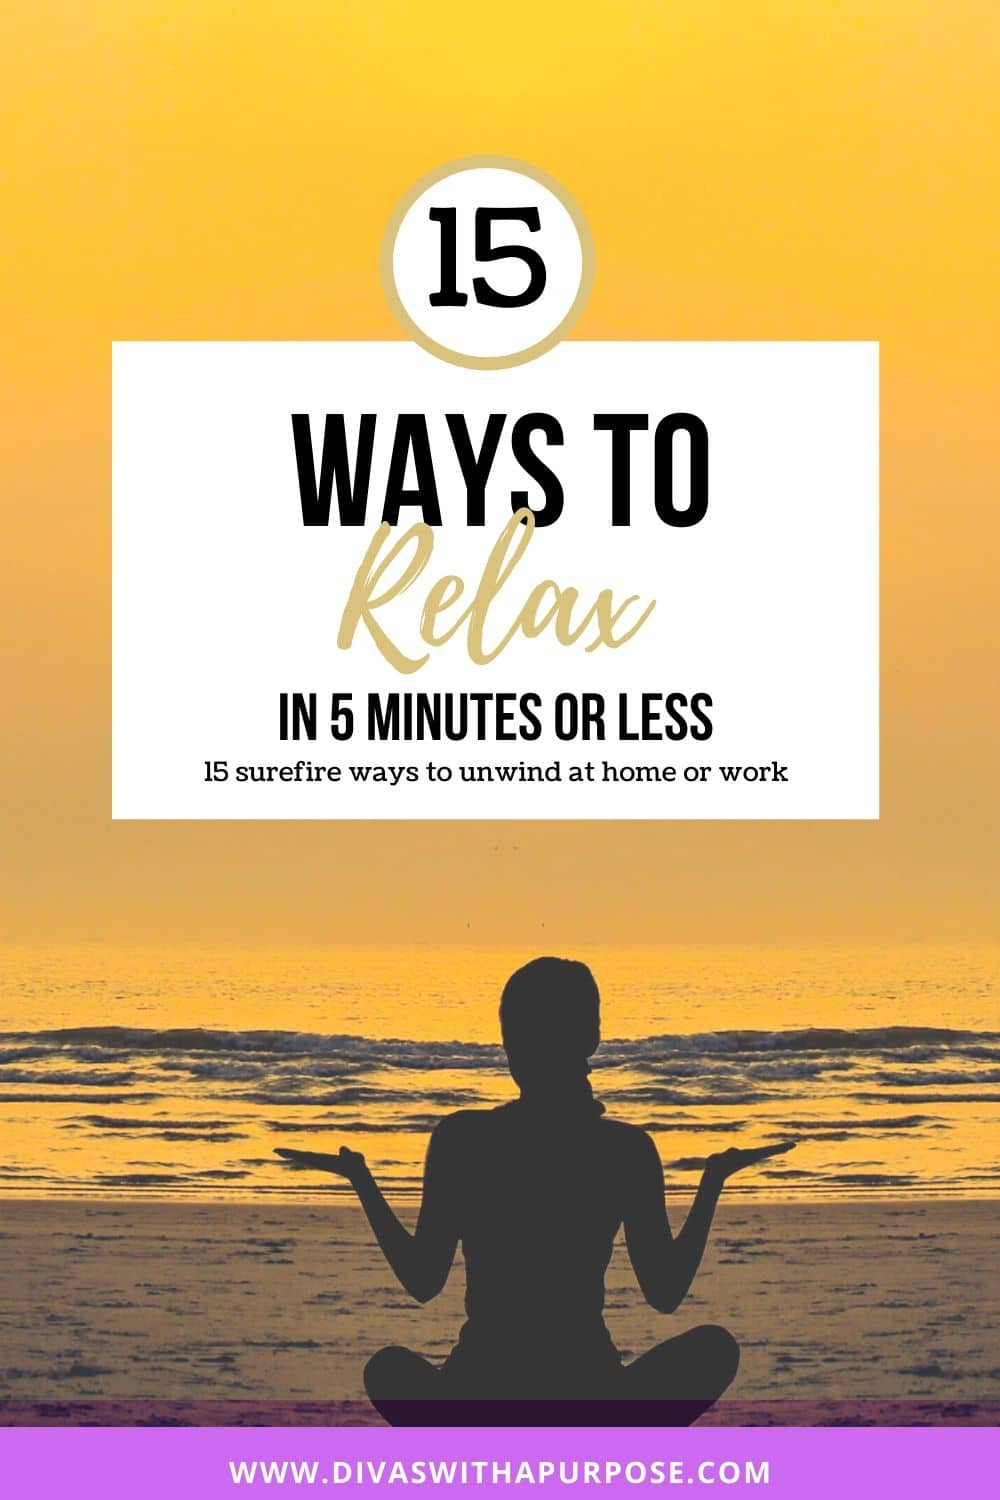 15 ways to relax in 5 minutes or less